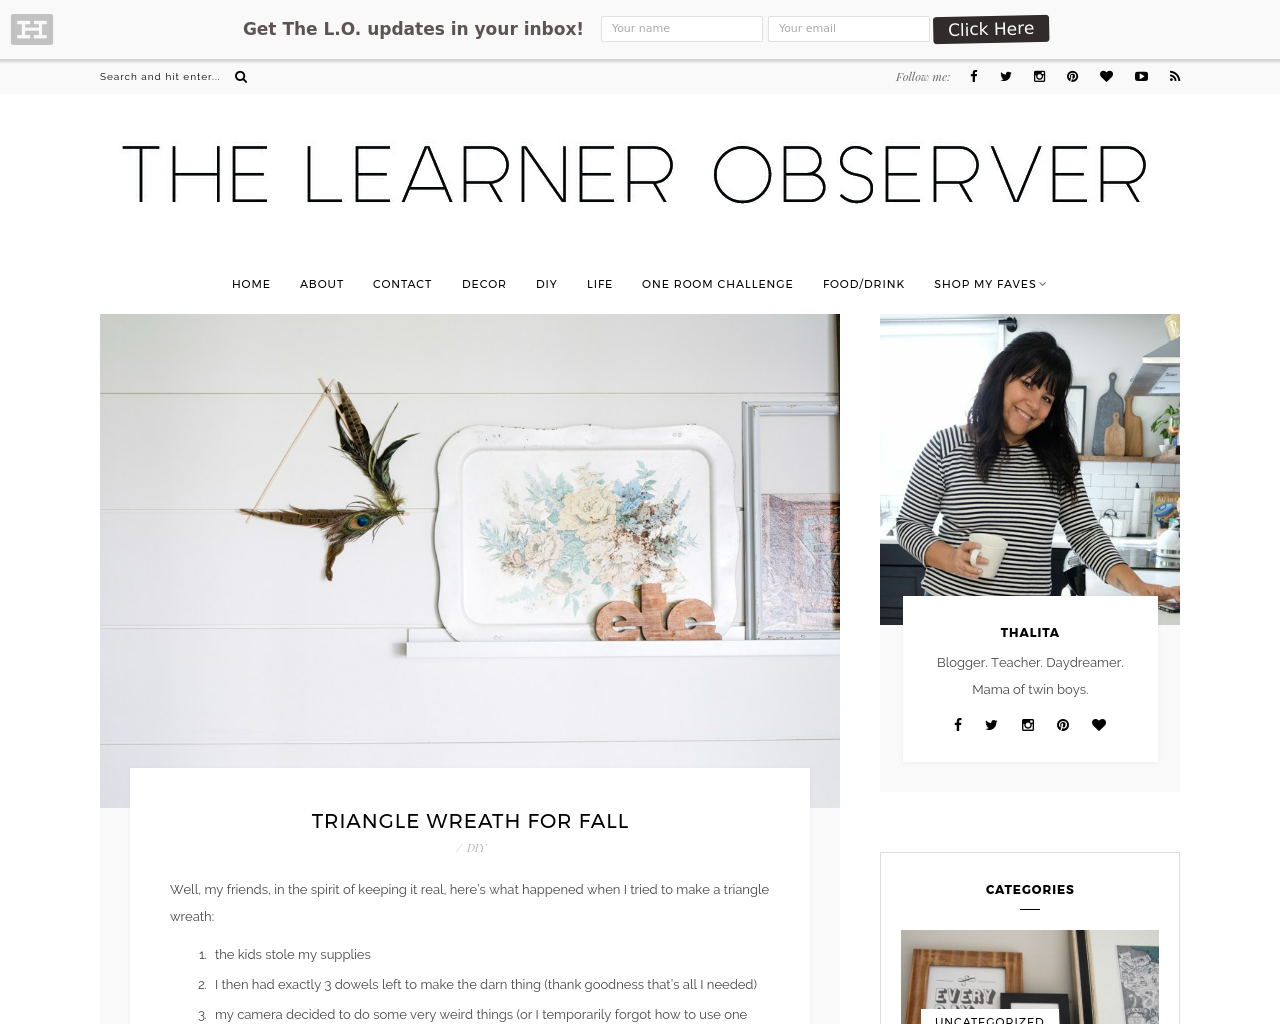 The-Learner-Observer-Advertising-Reviews-Pricing